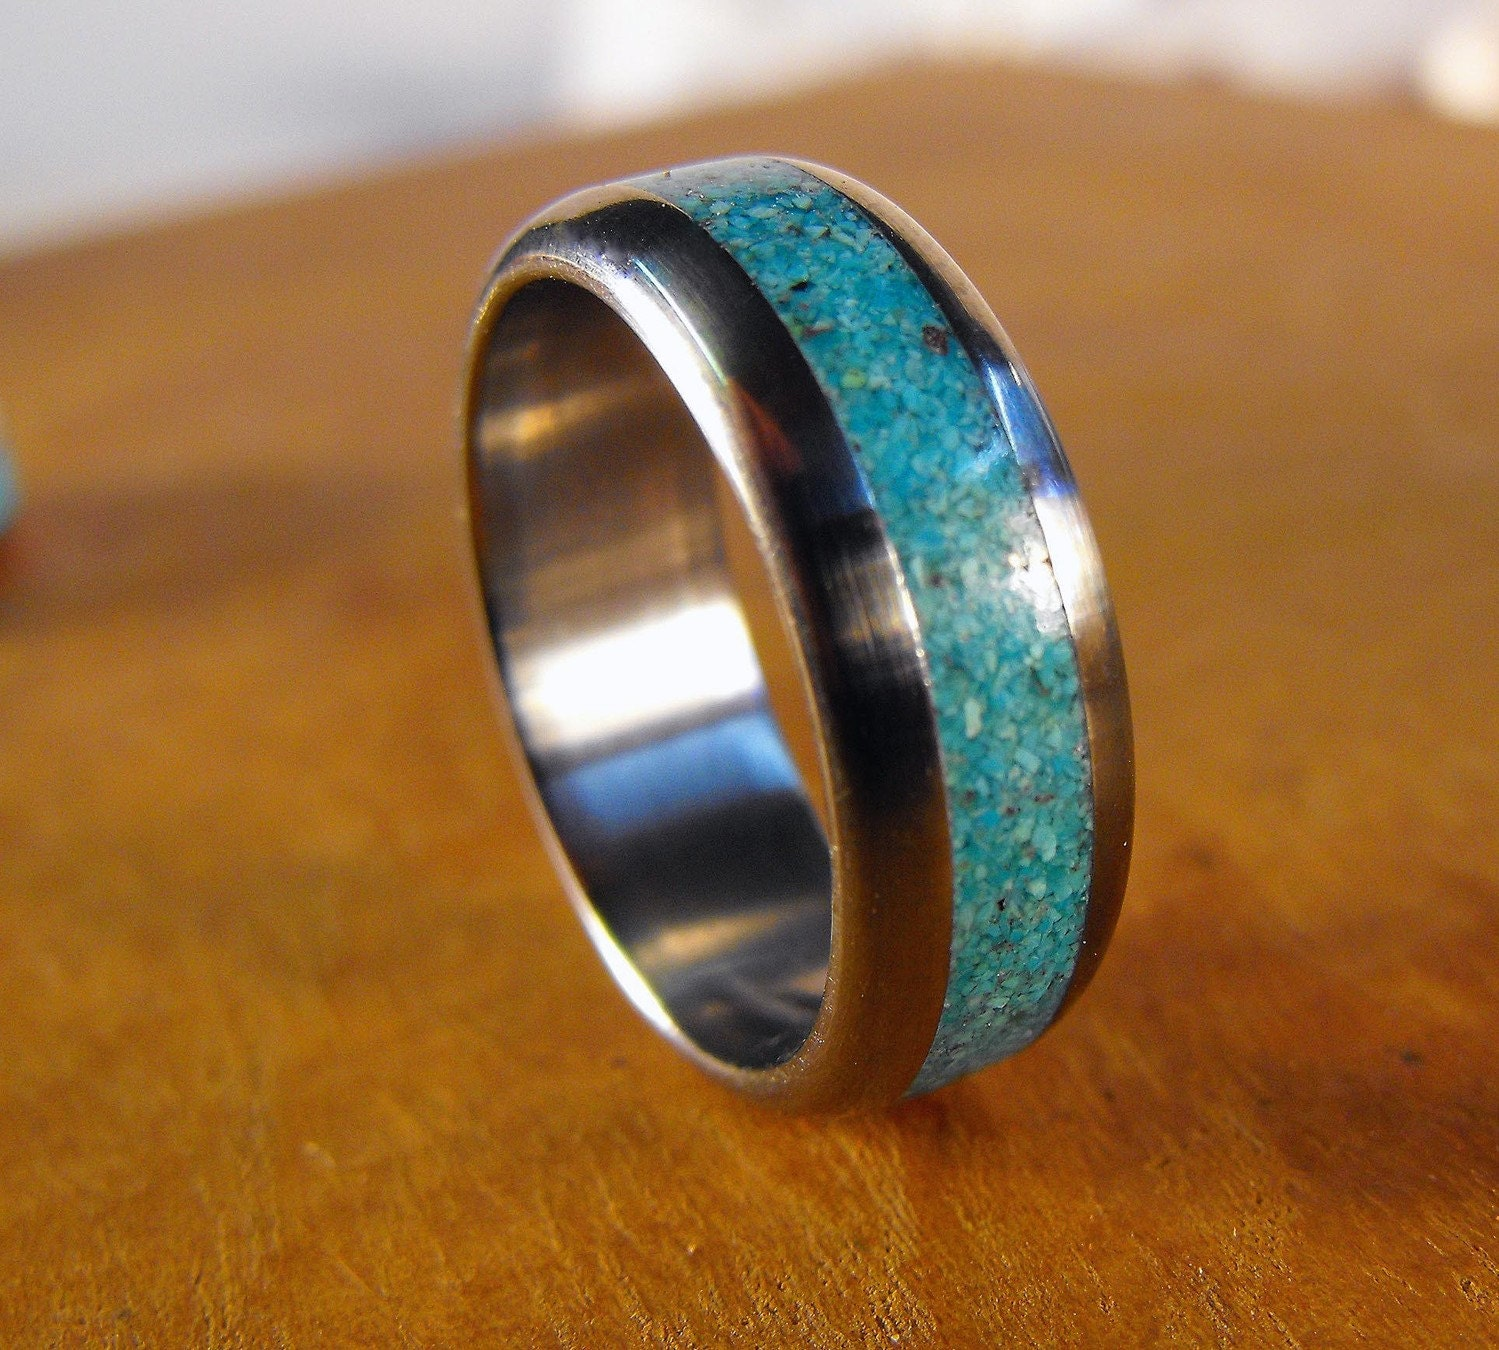 zoom - Turquoise Wedding Rings